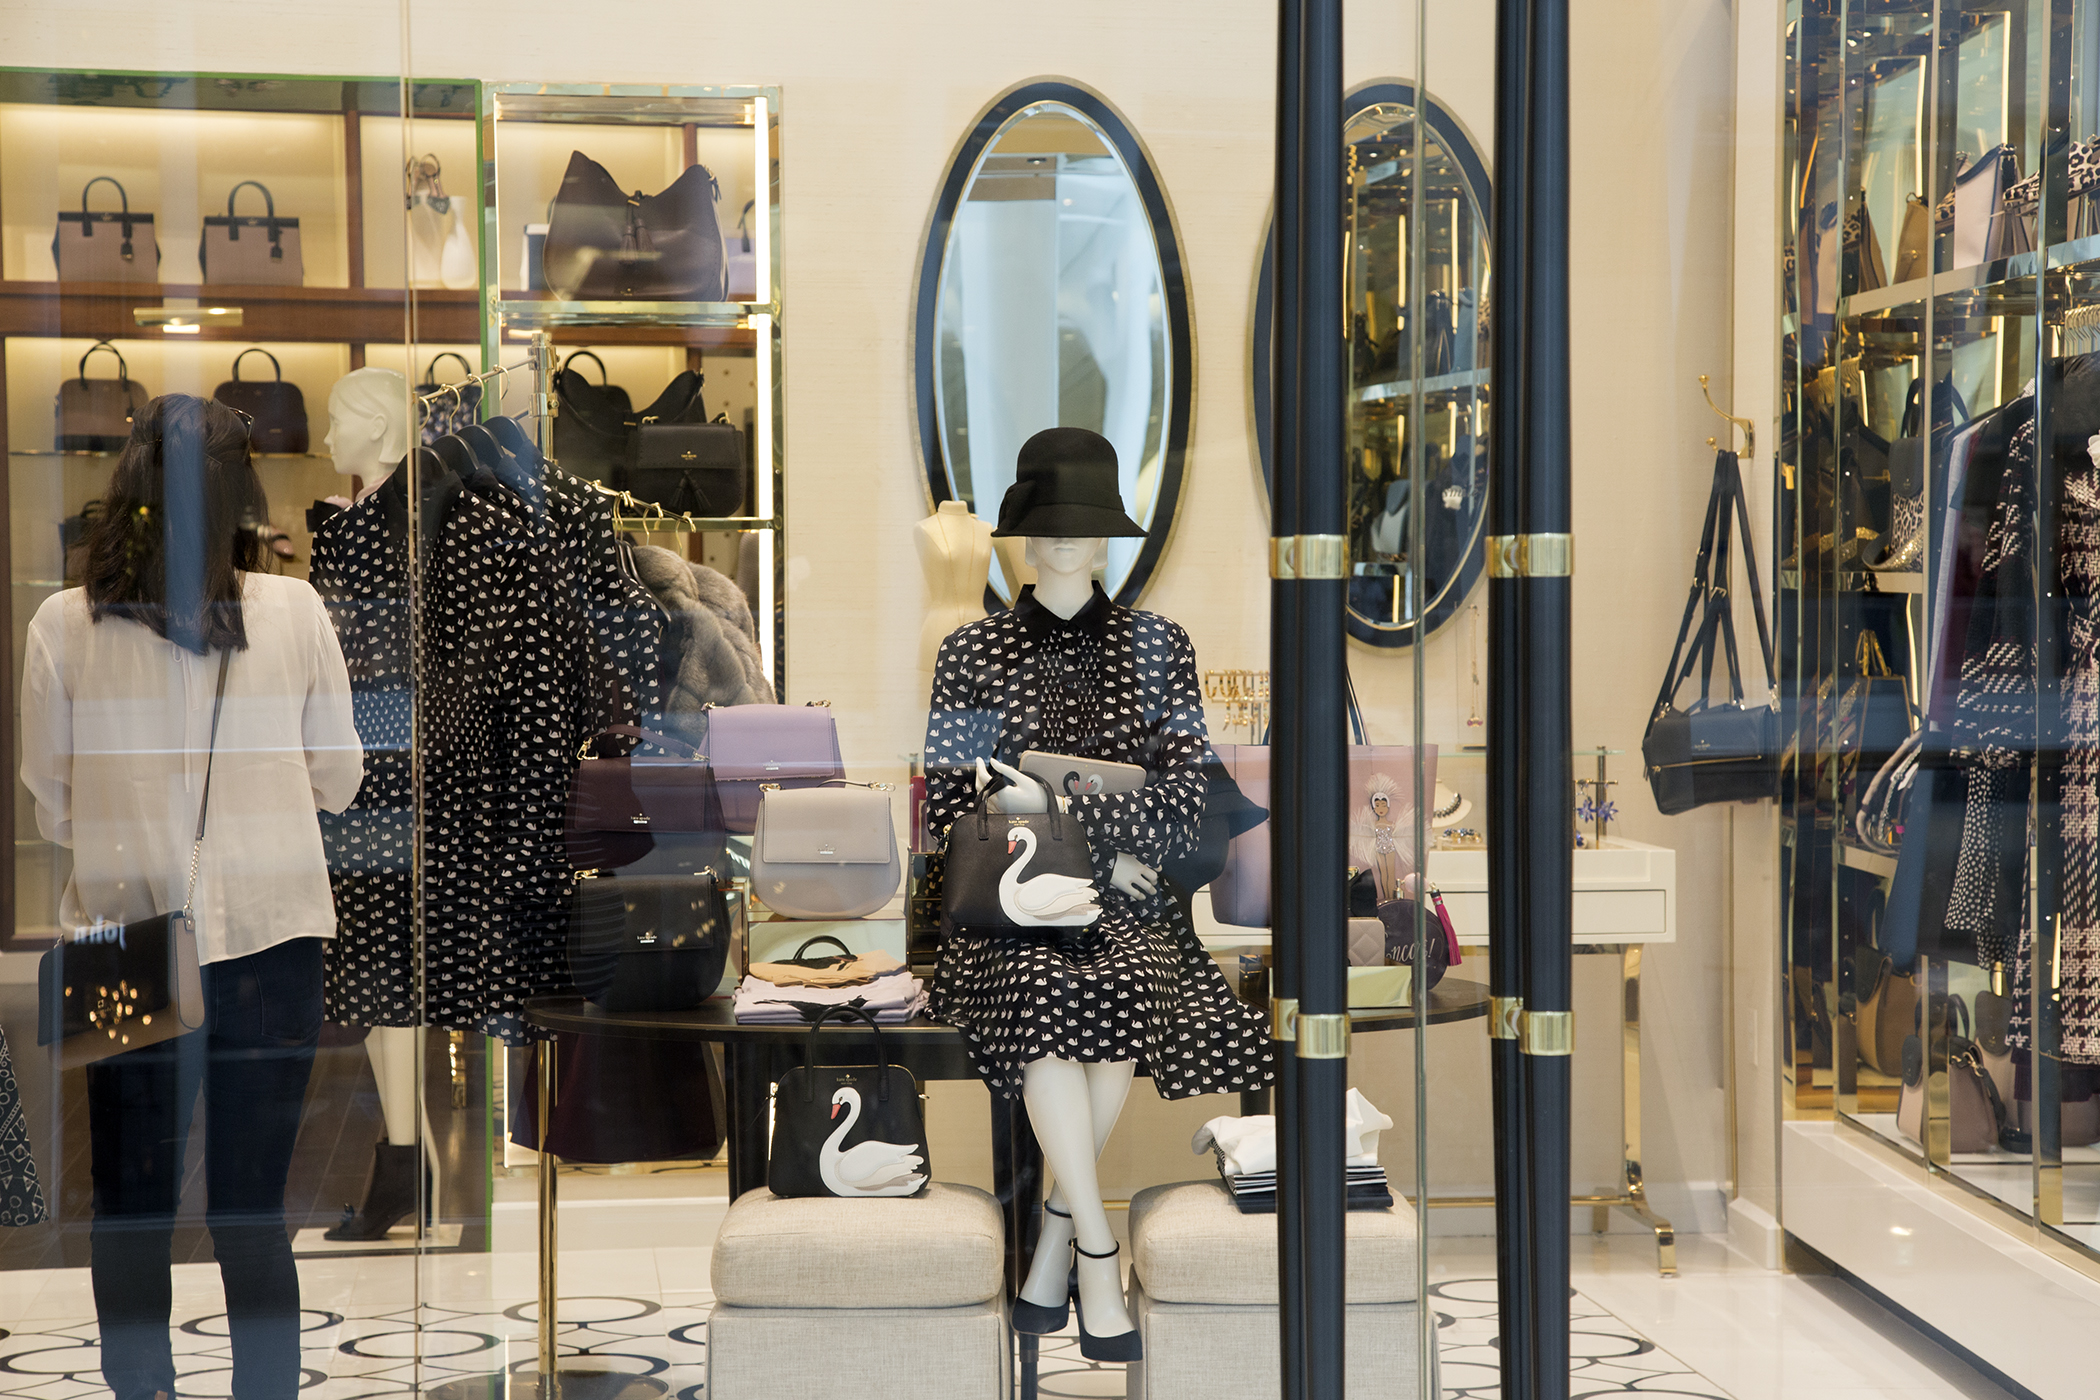 The Kate Spade store inside Westfield World Trade Center.